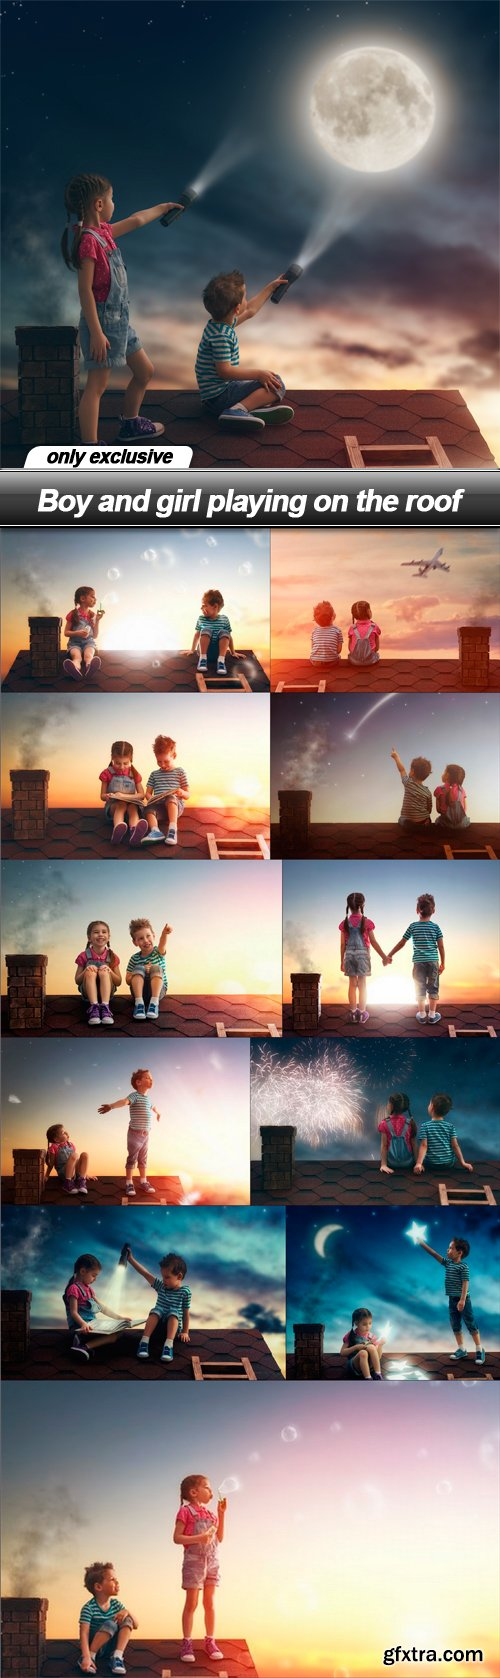 Boy and girl playing on the roof - 12 UHQ JPEG